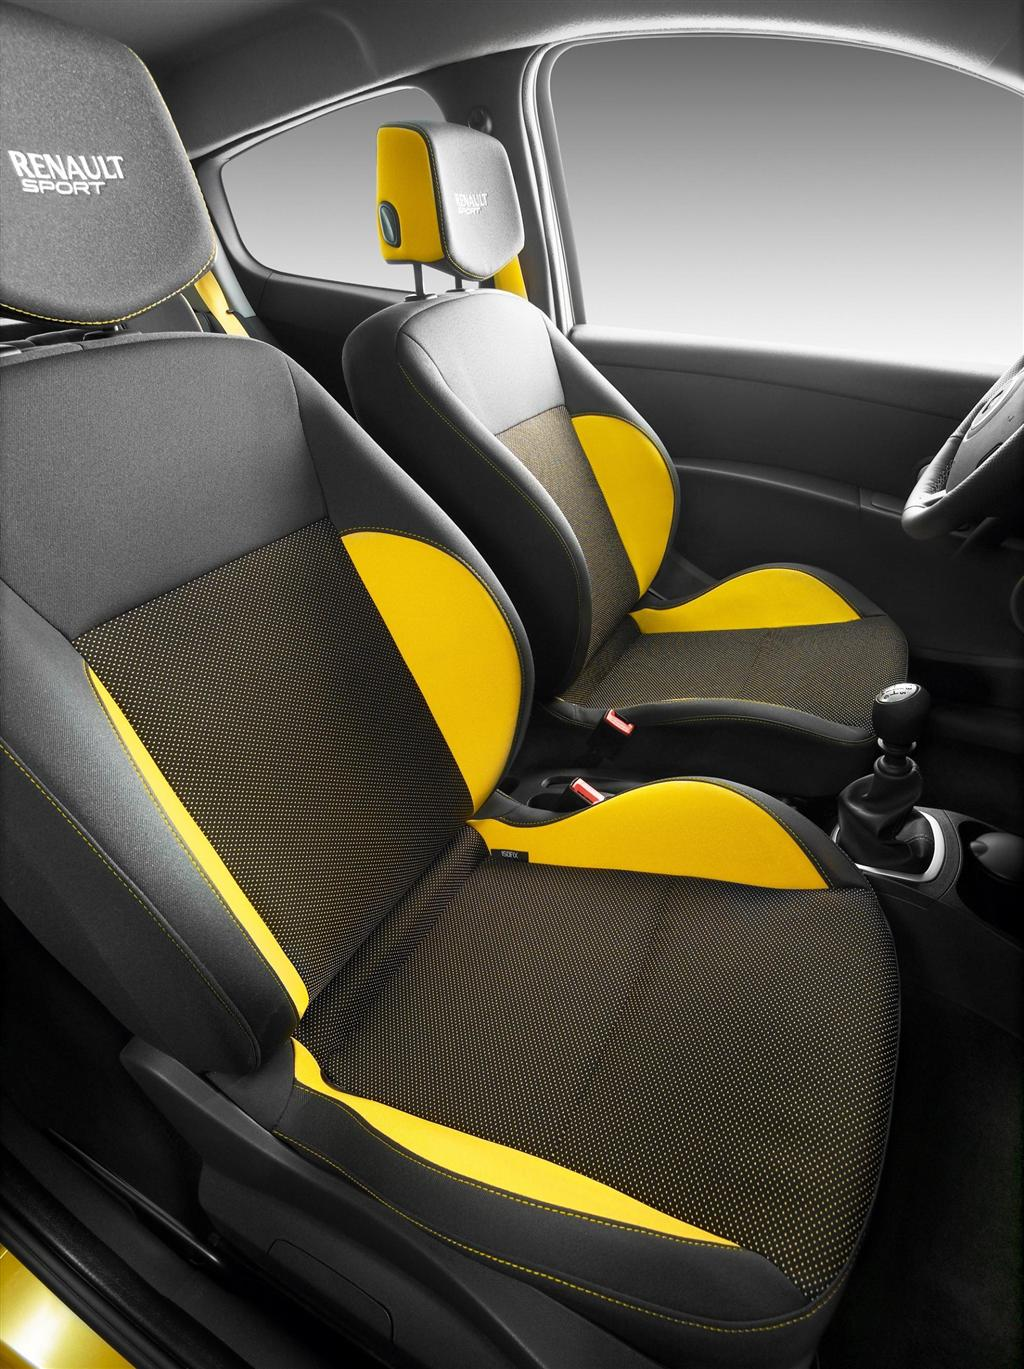 2010 renault clio rs. Black Bedroom Furniture Sets. Home Design Ideas